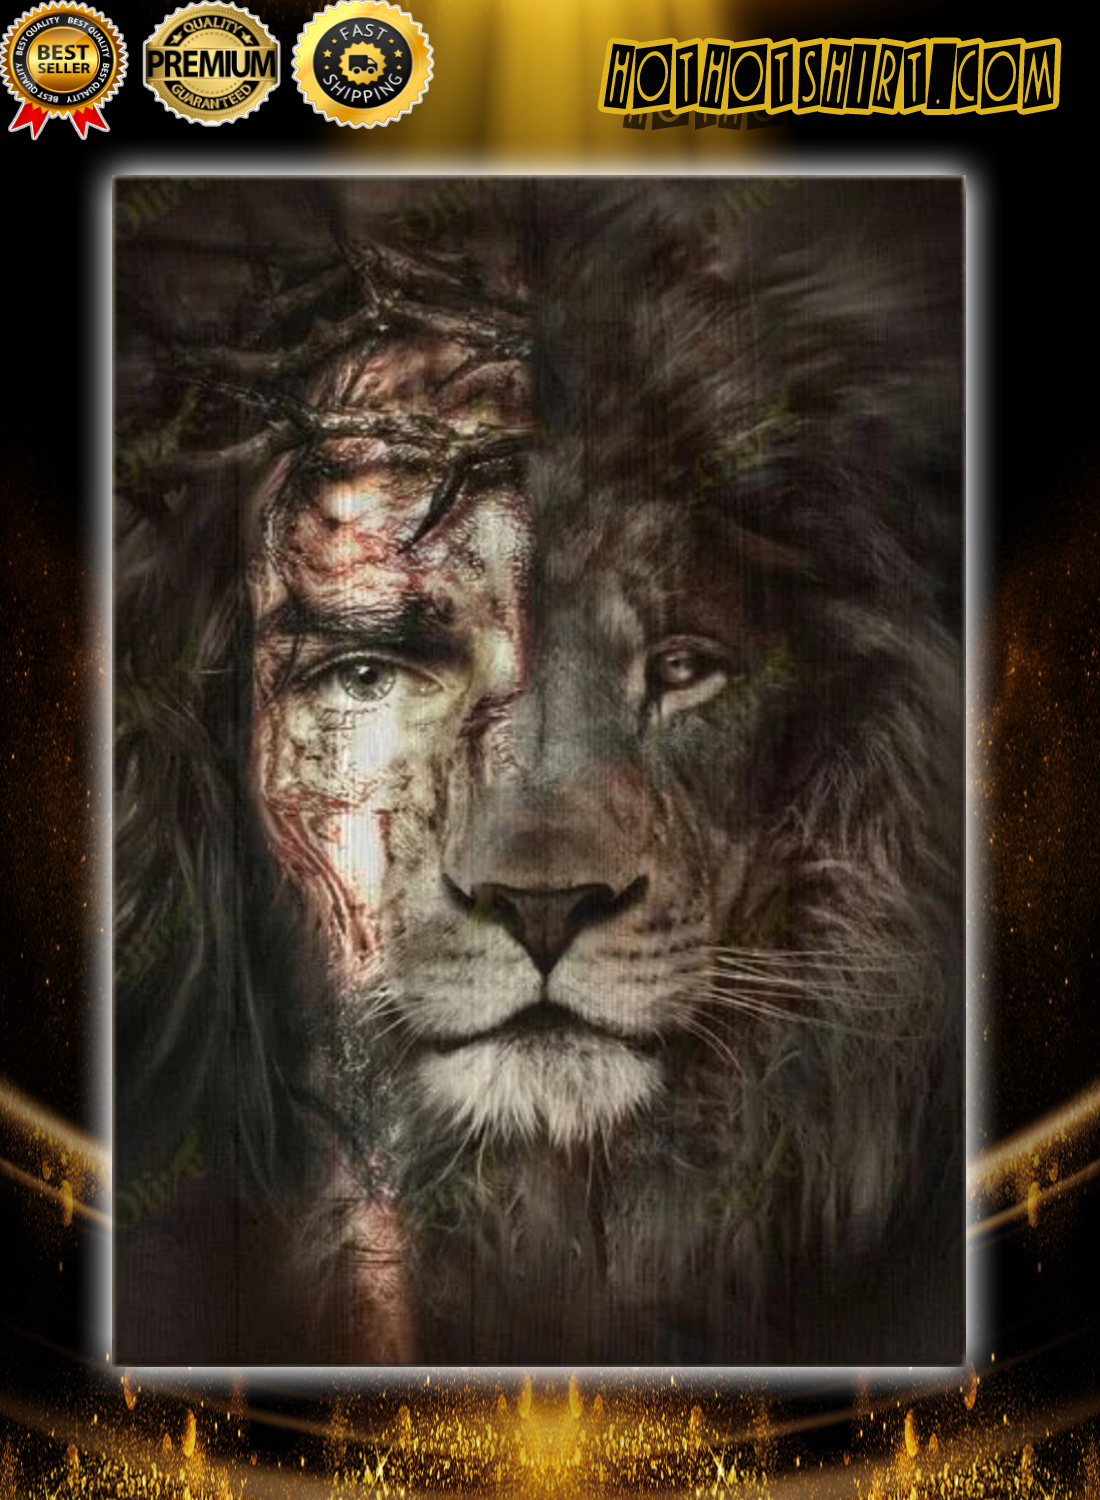 Jesus and lion poster